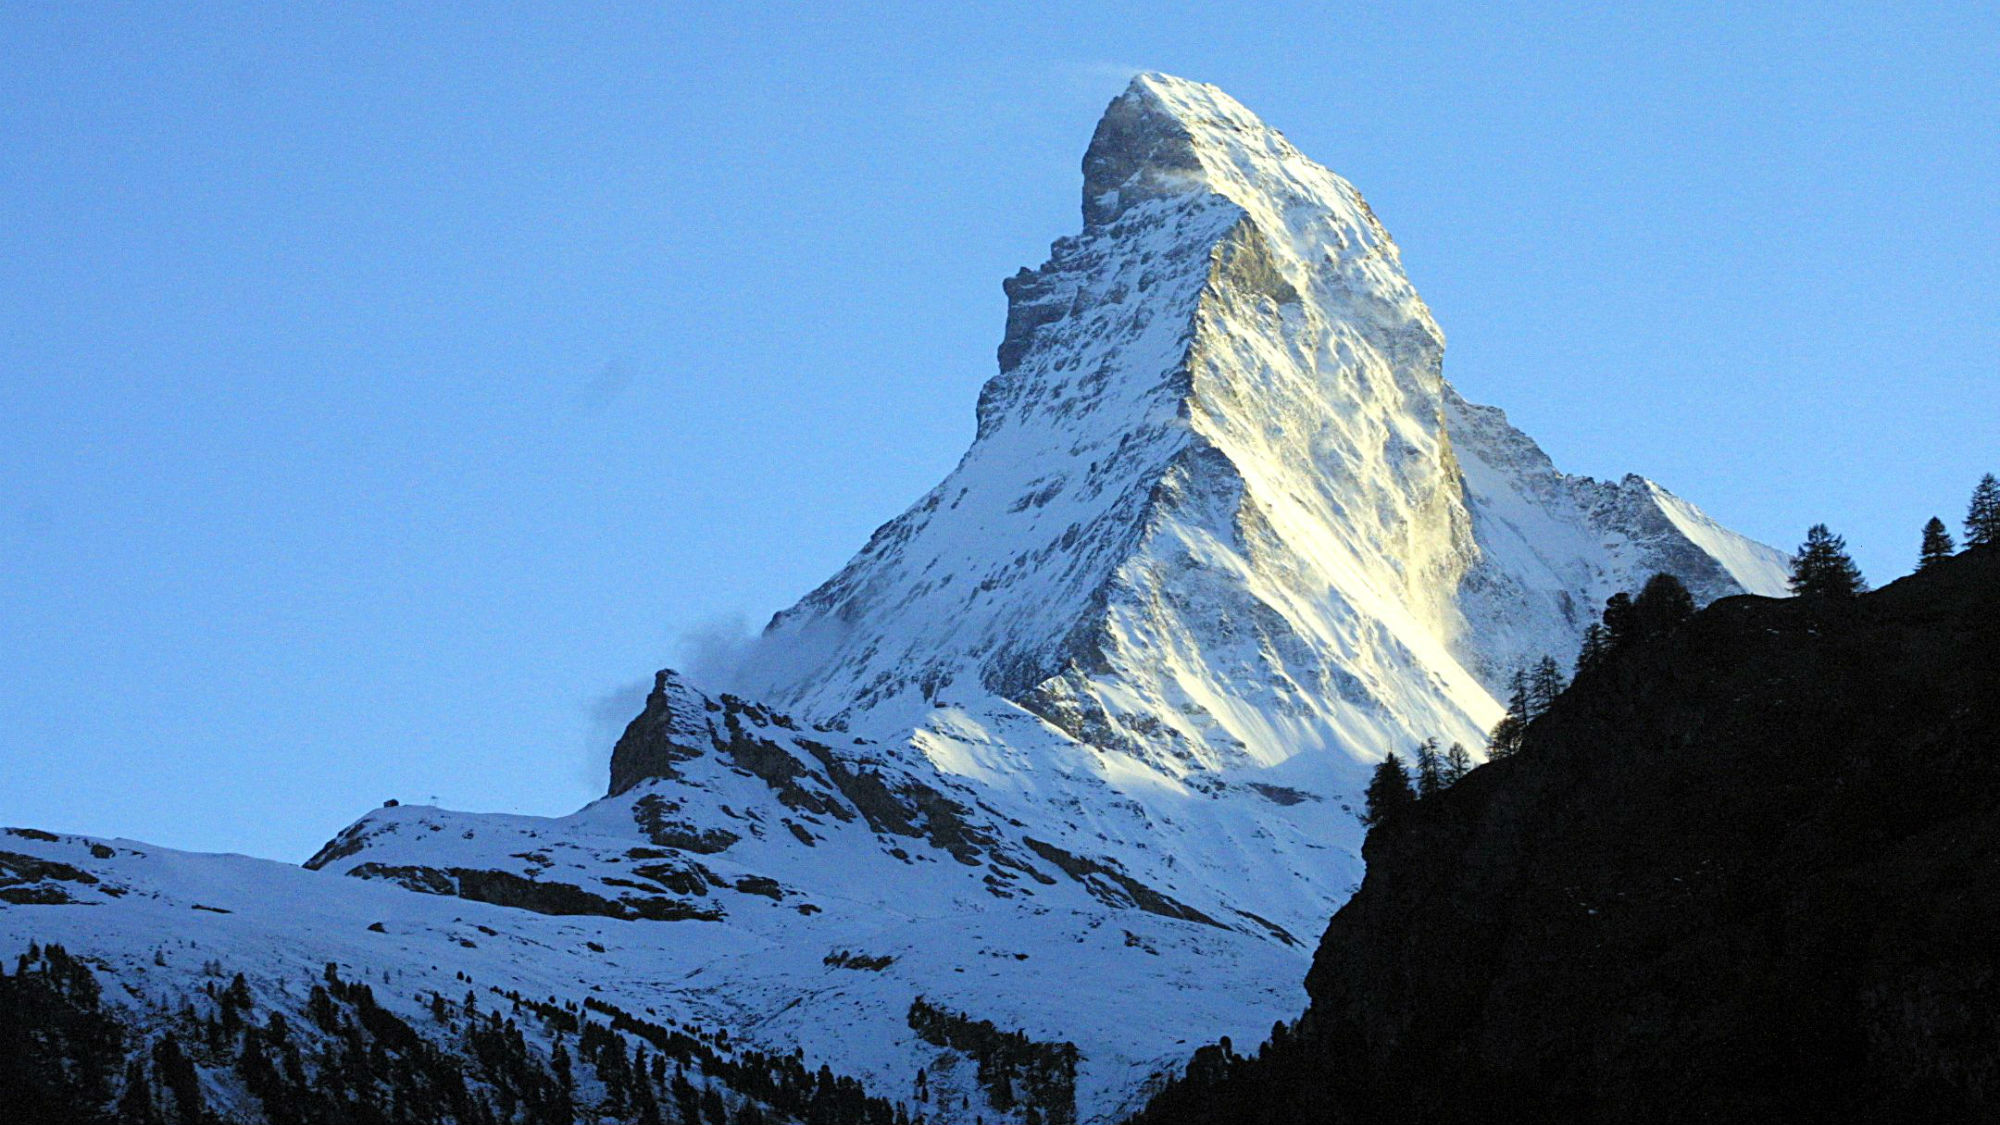 Tourism in Switzerland: Matterhorn Mountain